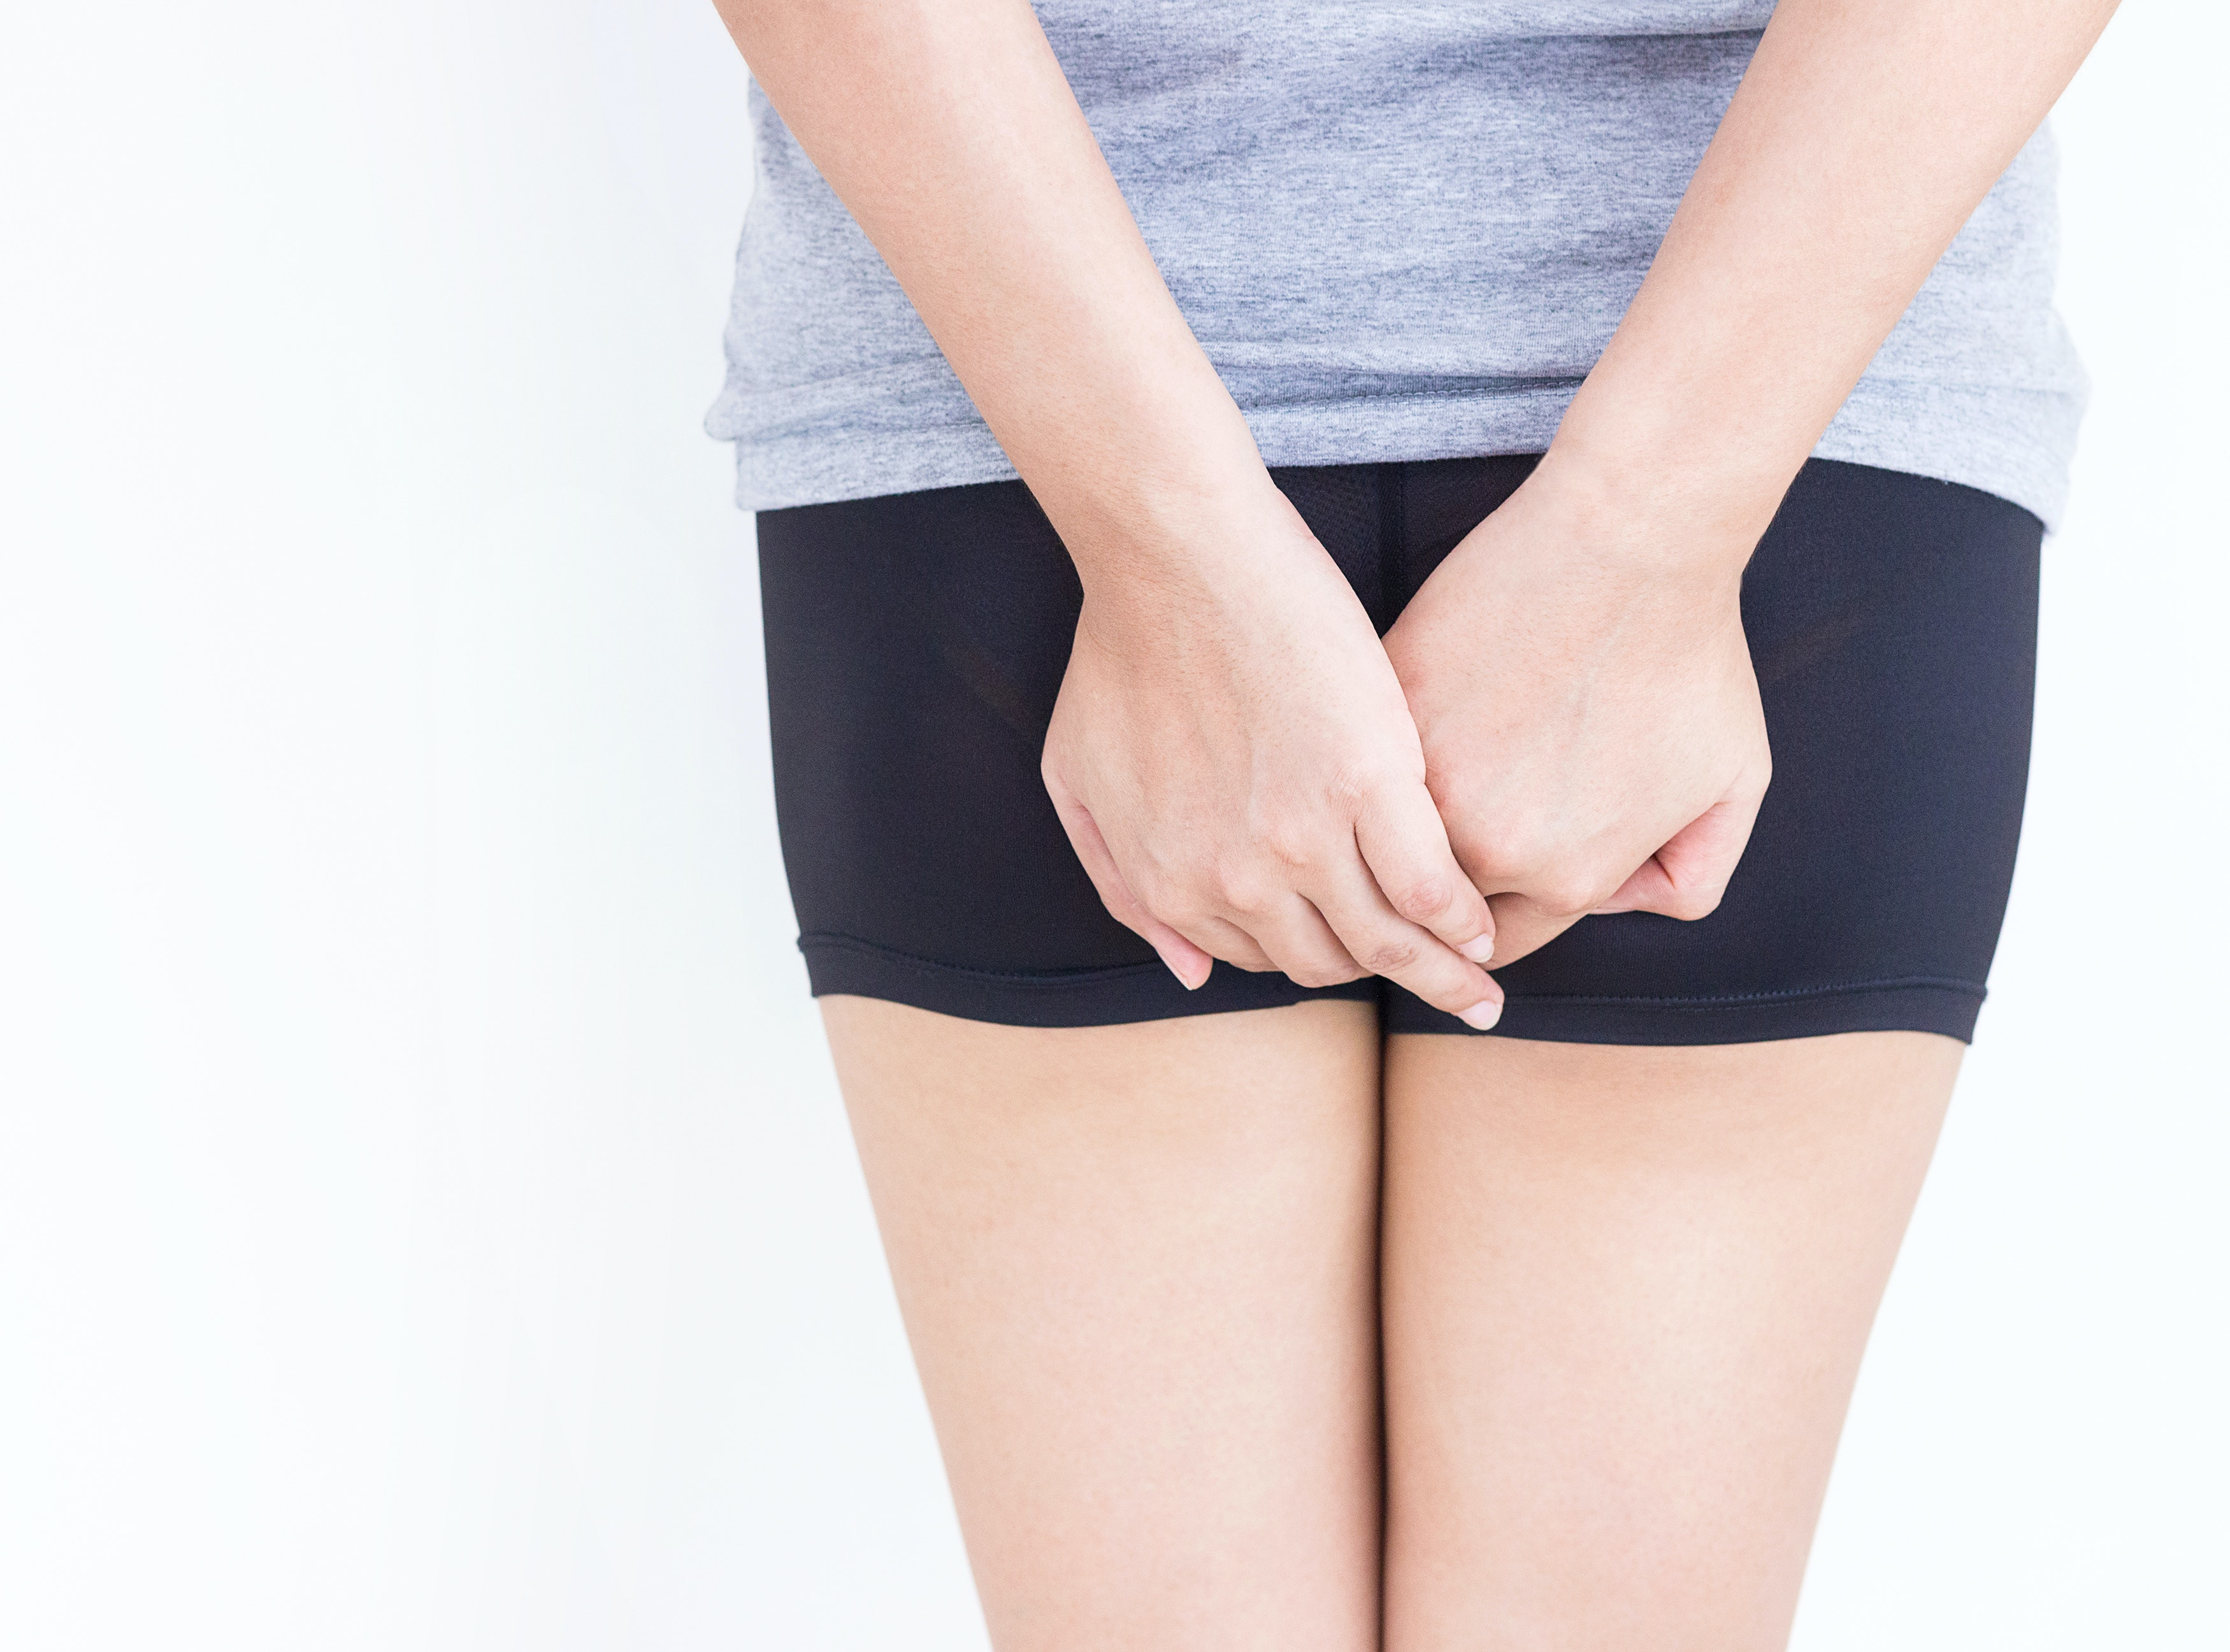 Symptoms and Causes of an Itchy Buttocks